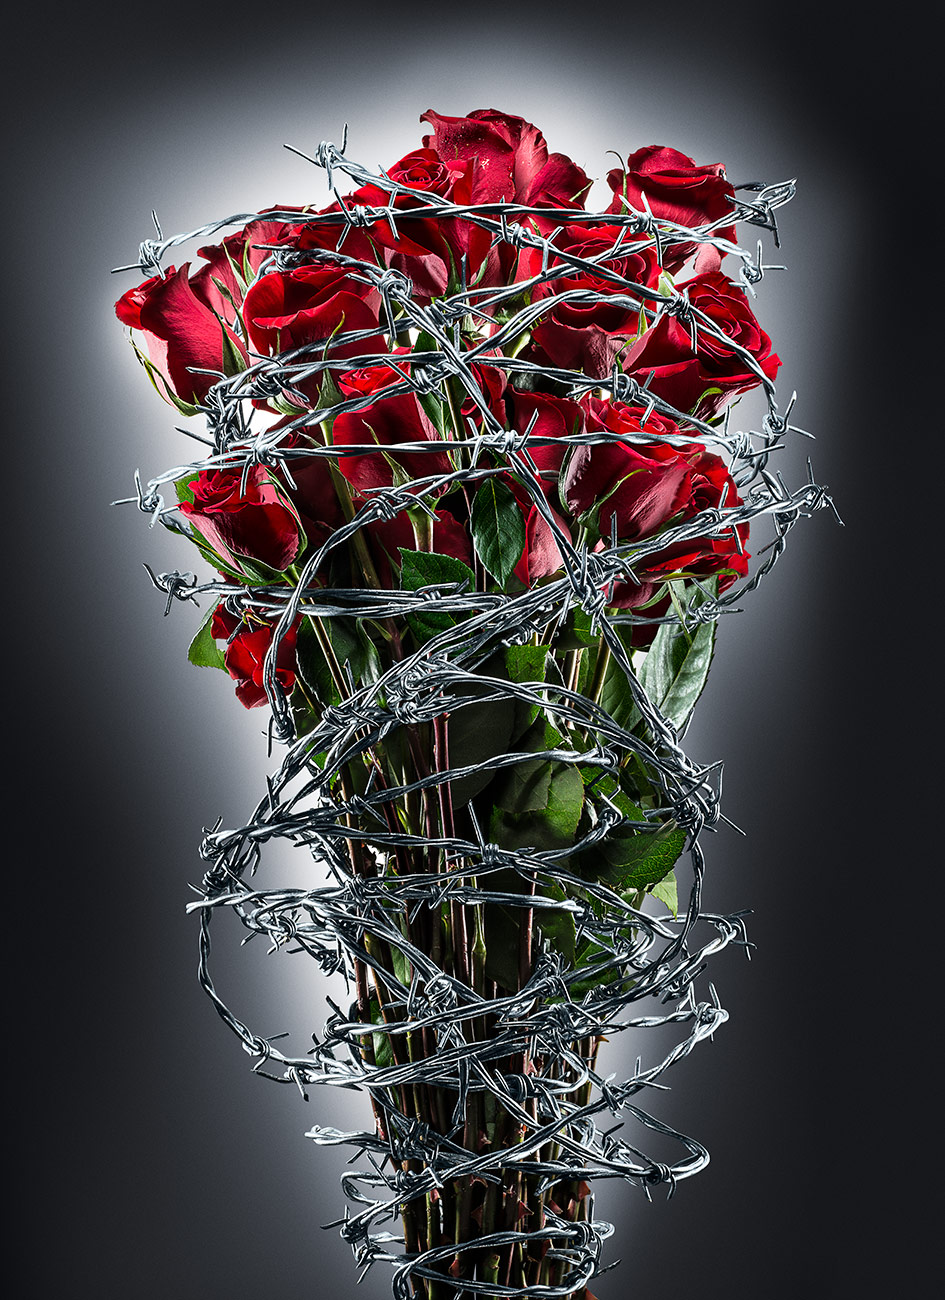 Roses_BarbedWire_M2